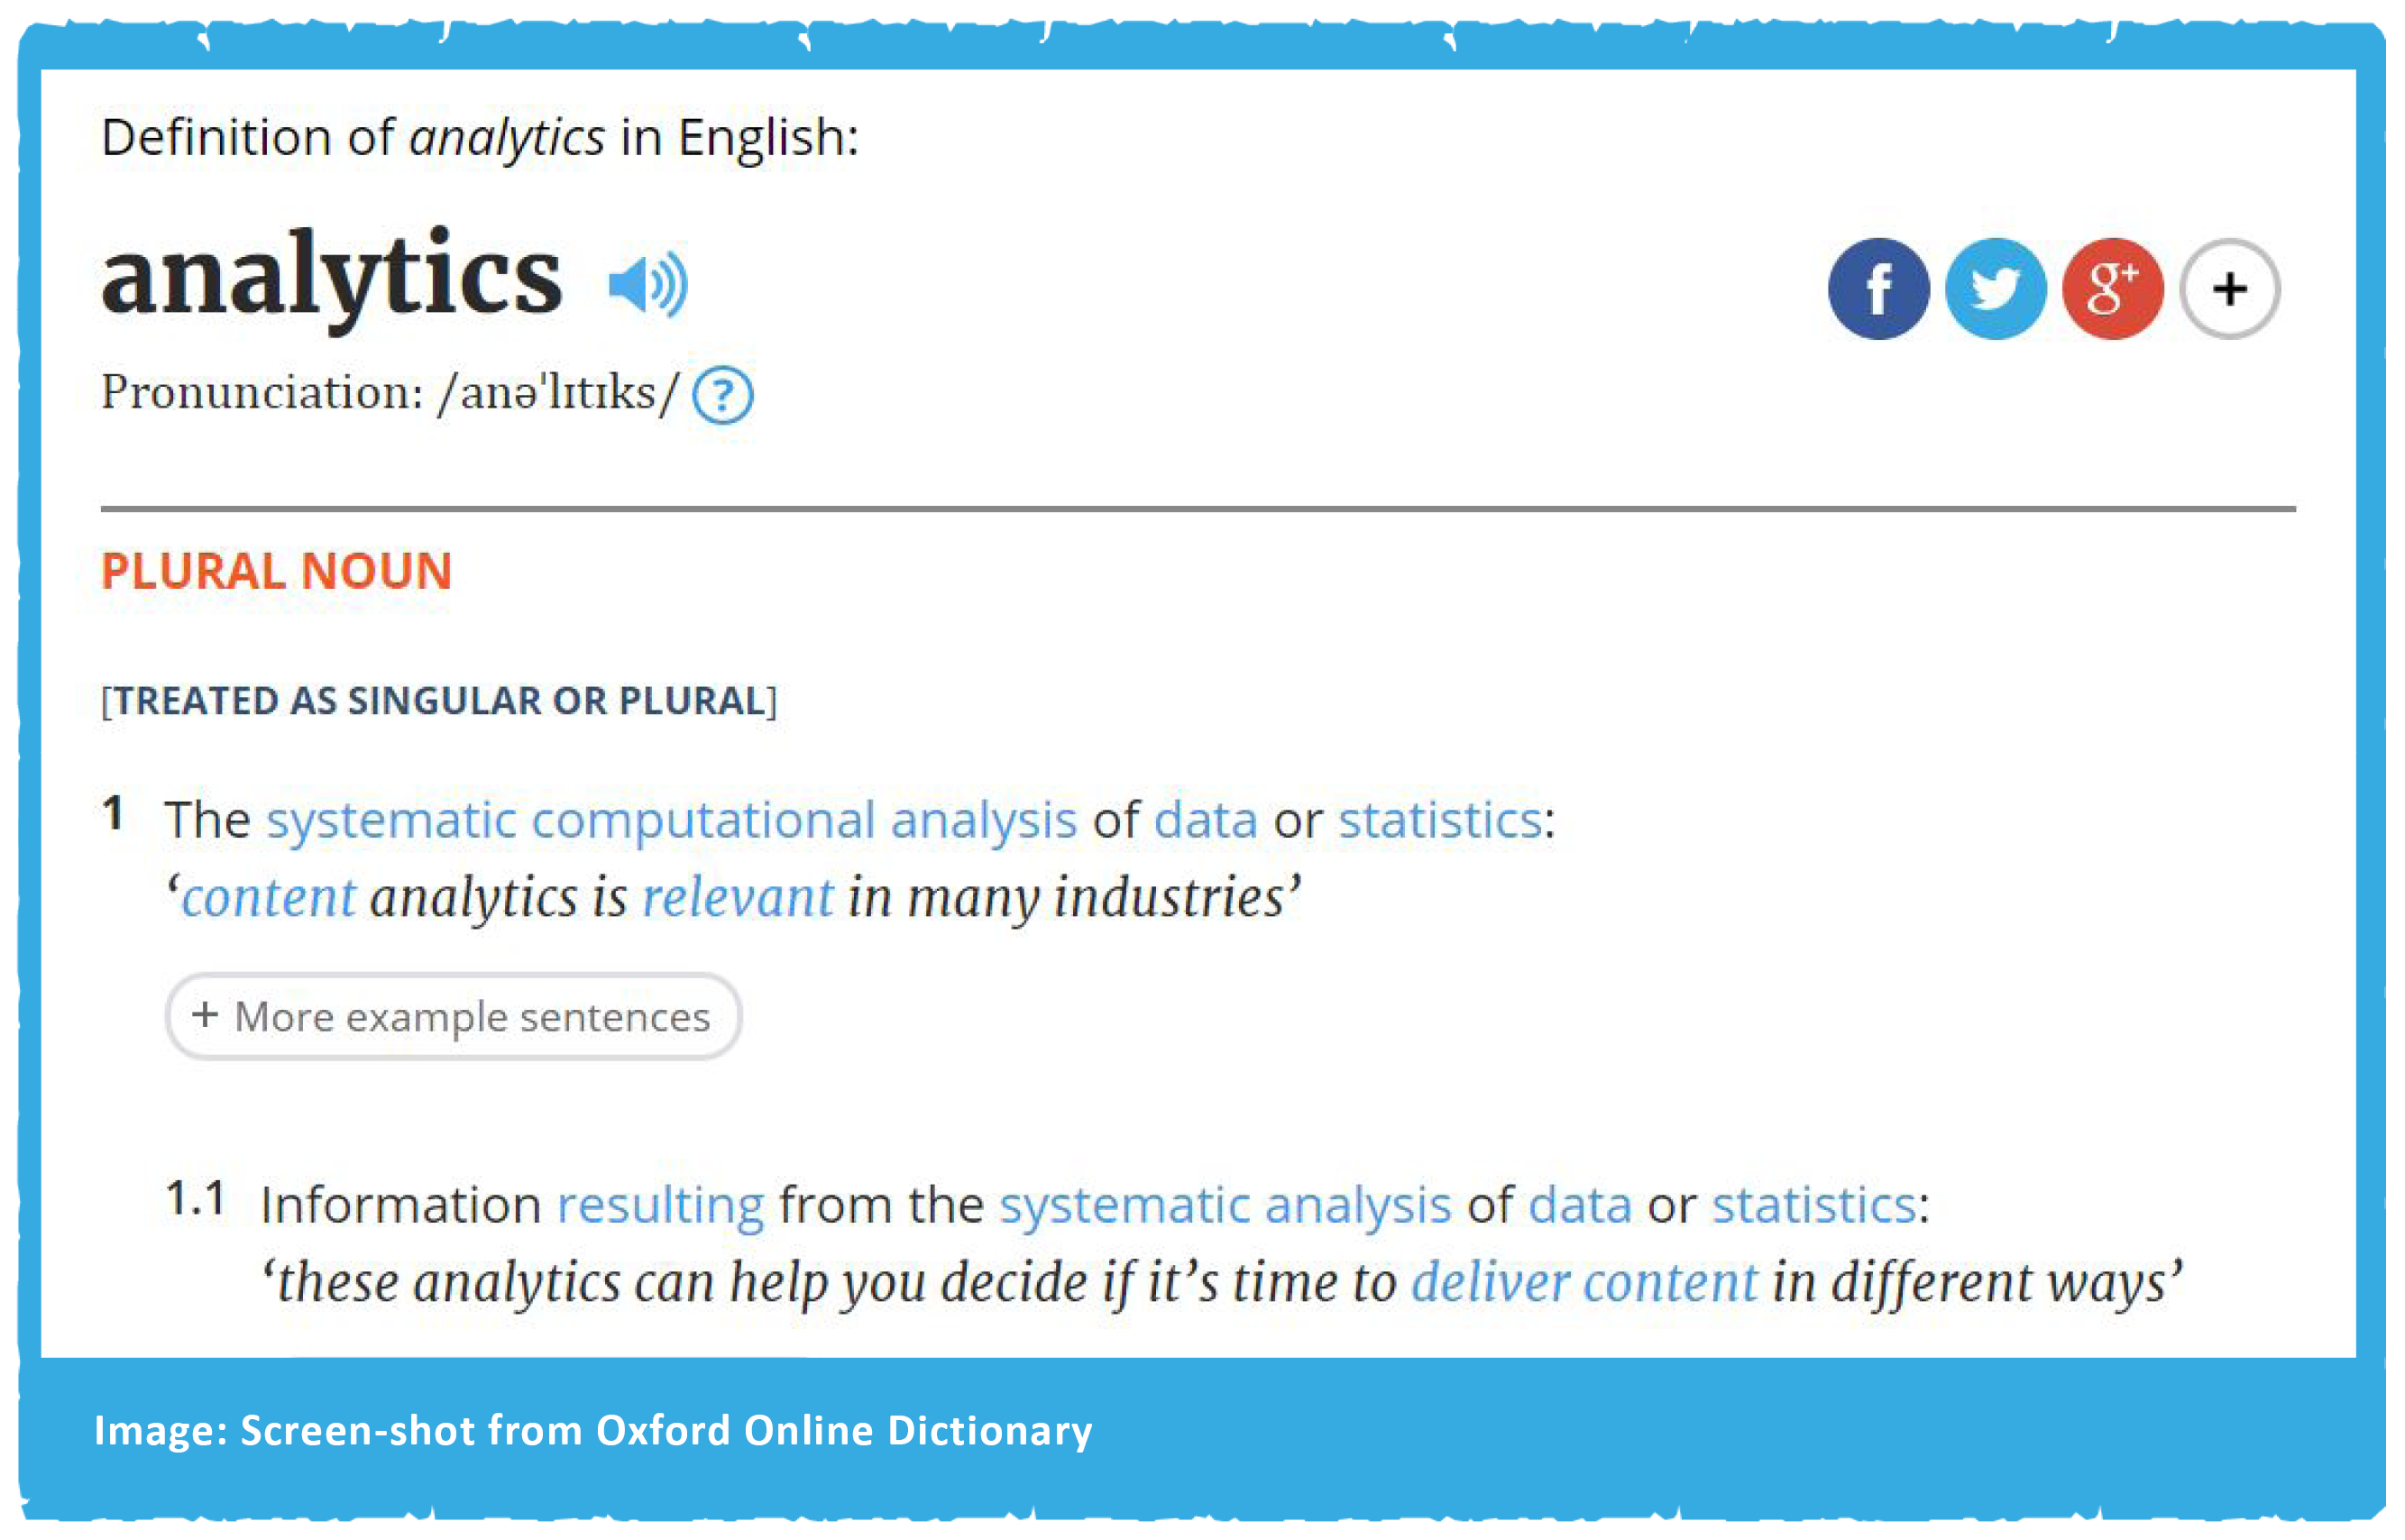 Oxford English Dictionary Definition of Analytics